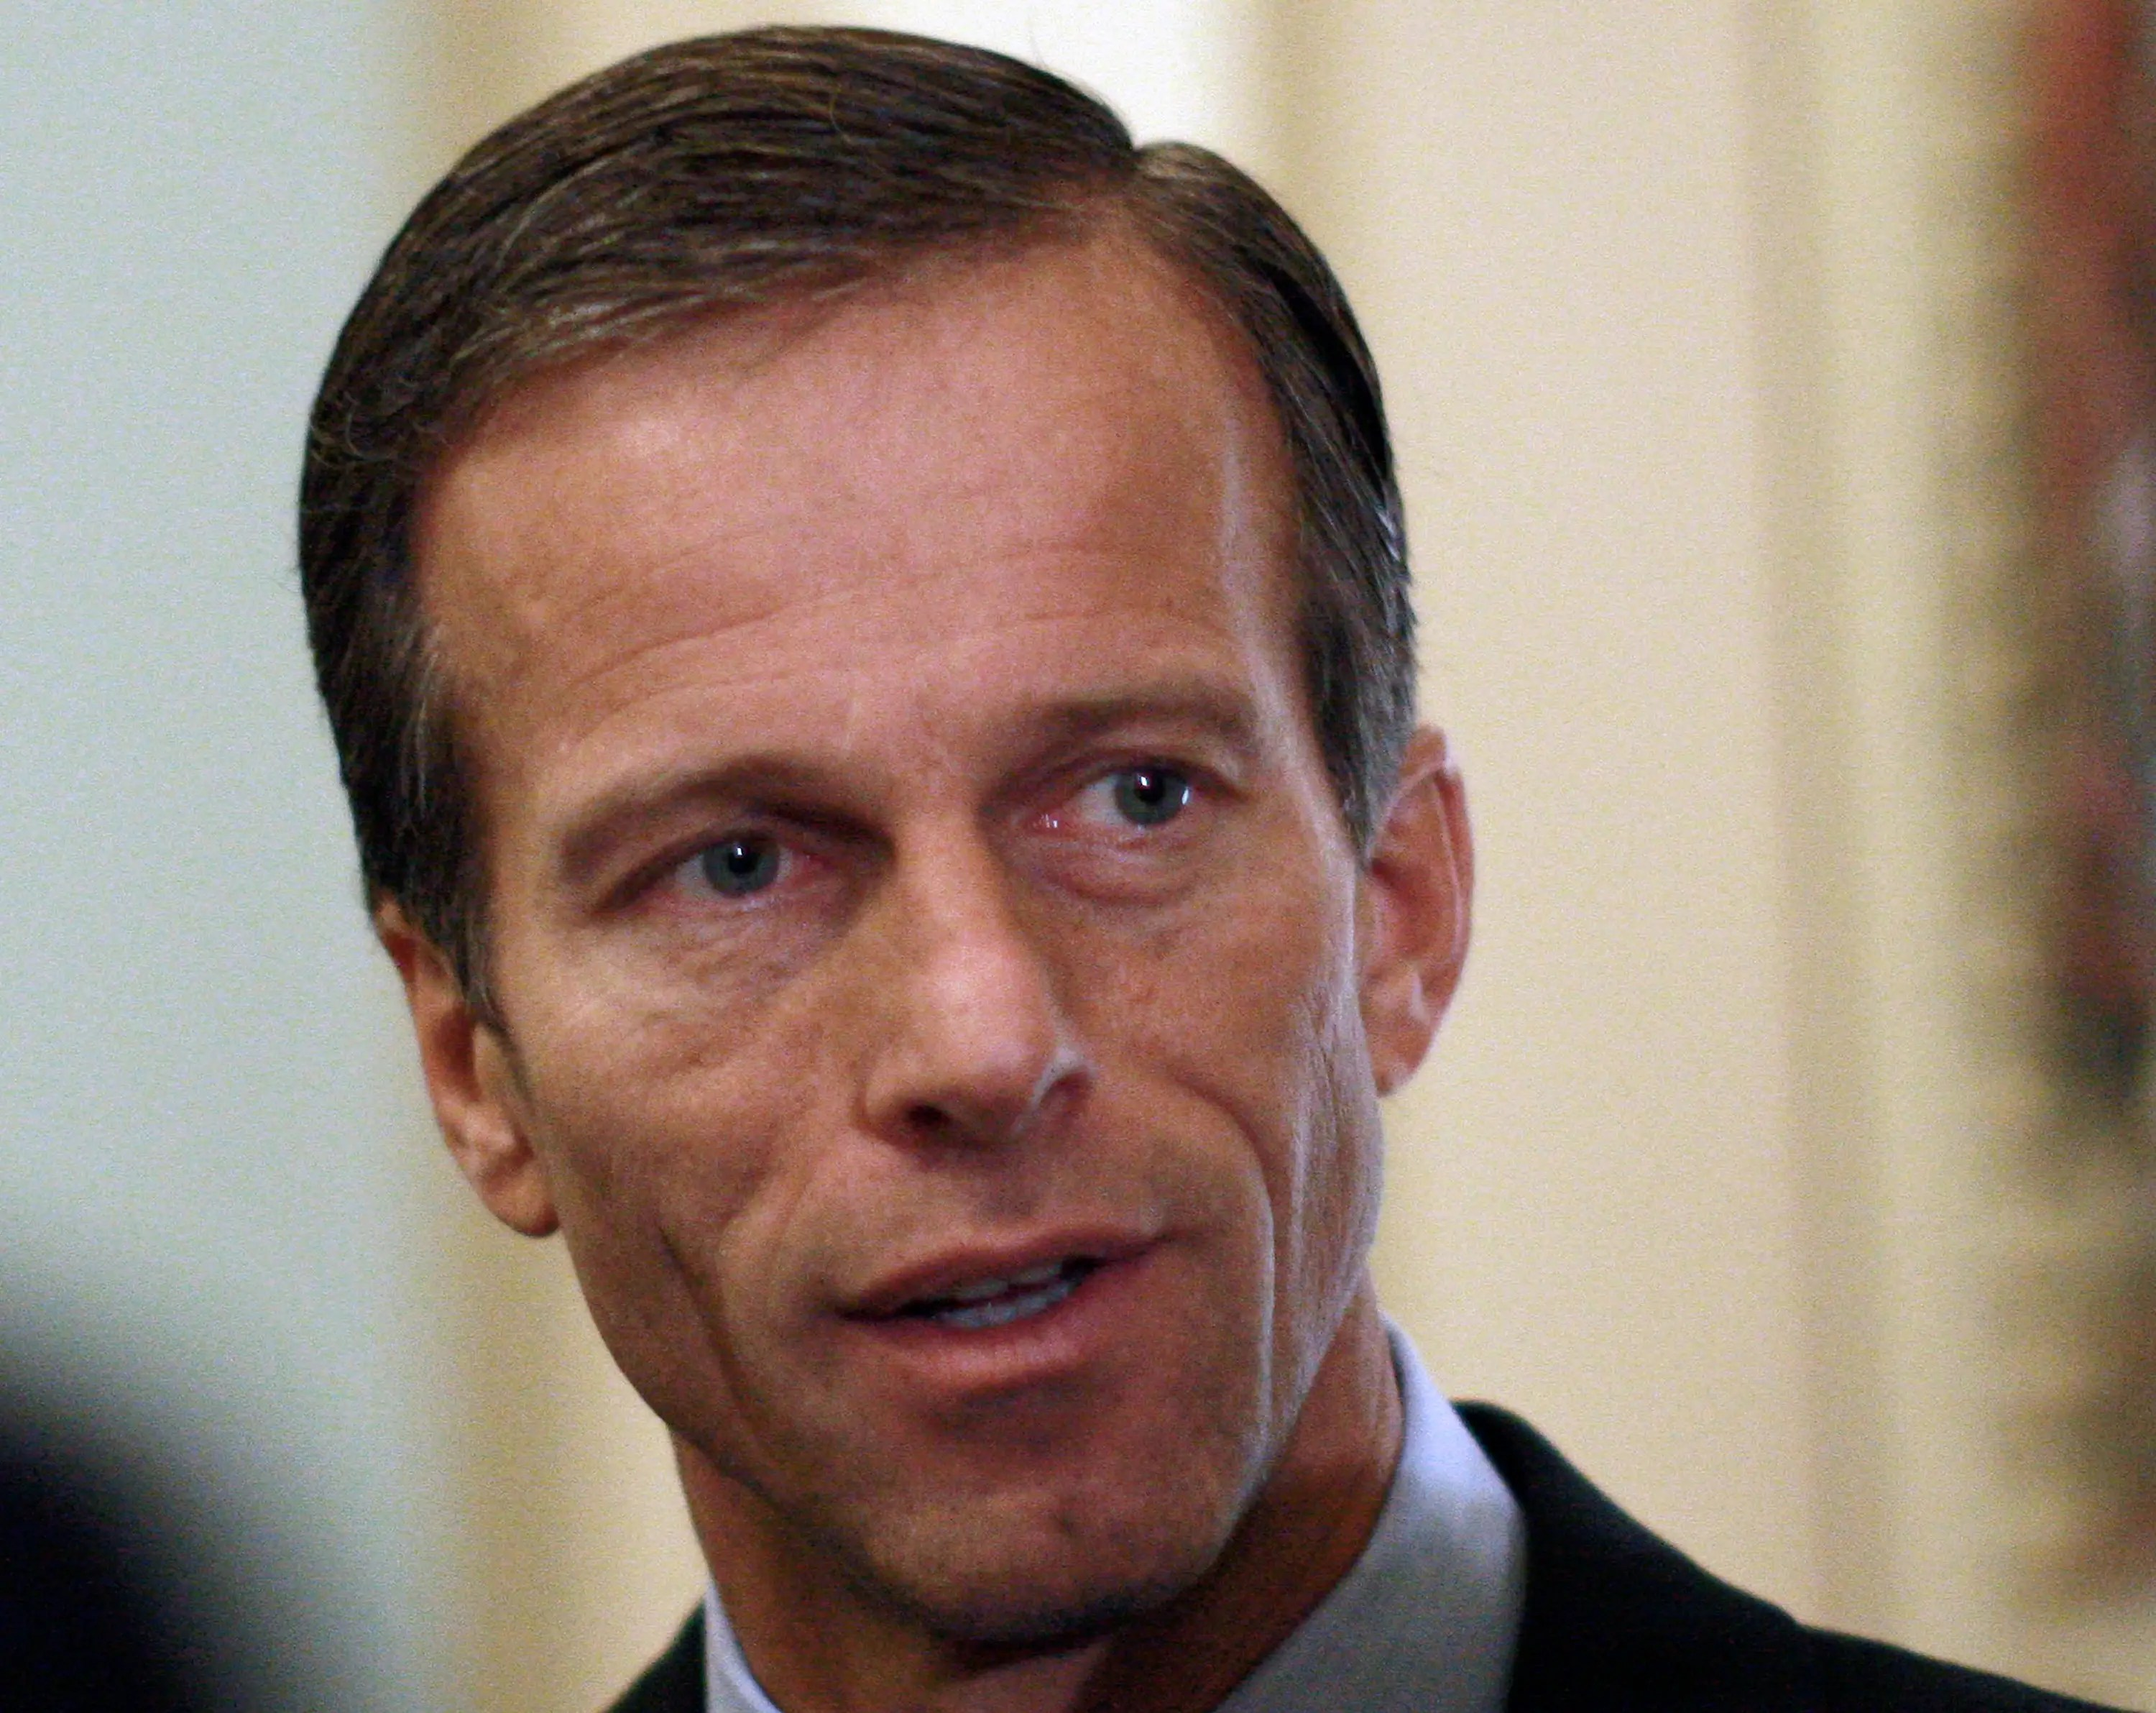 John Thune, South Dakota Senator (4.5 percent)